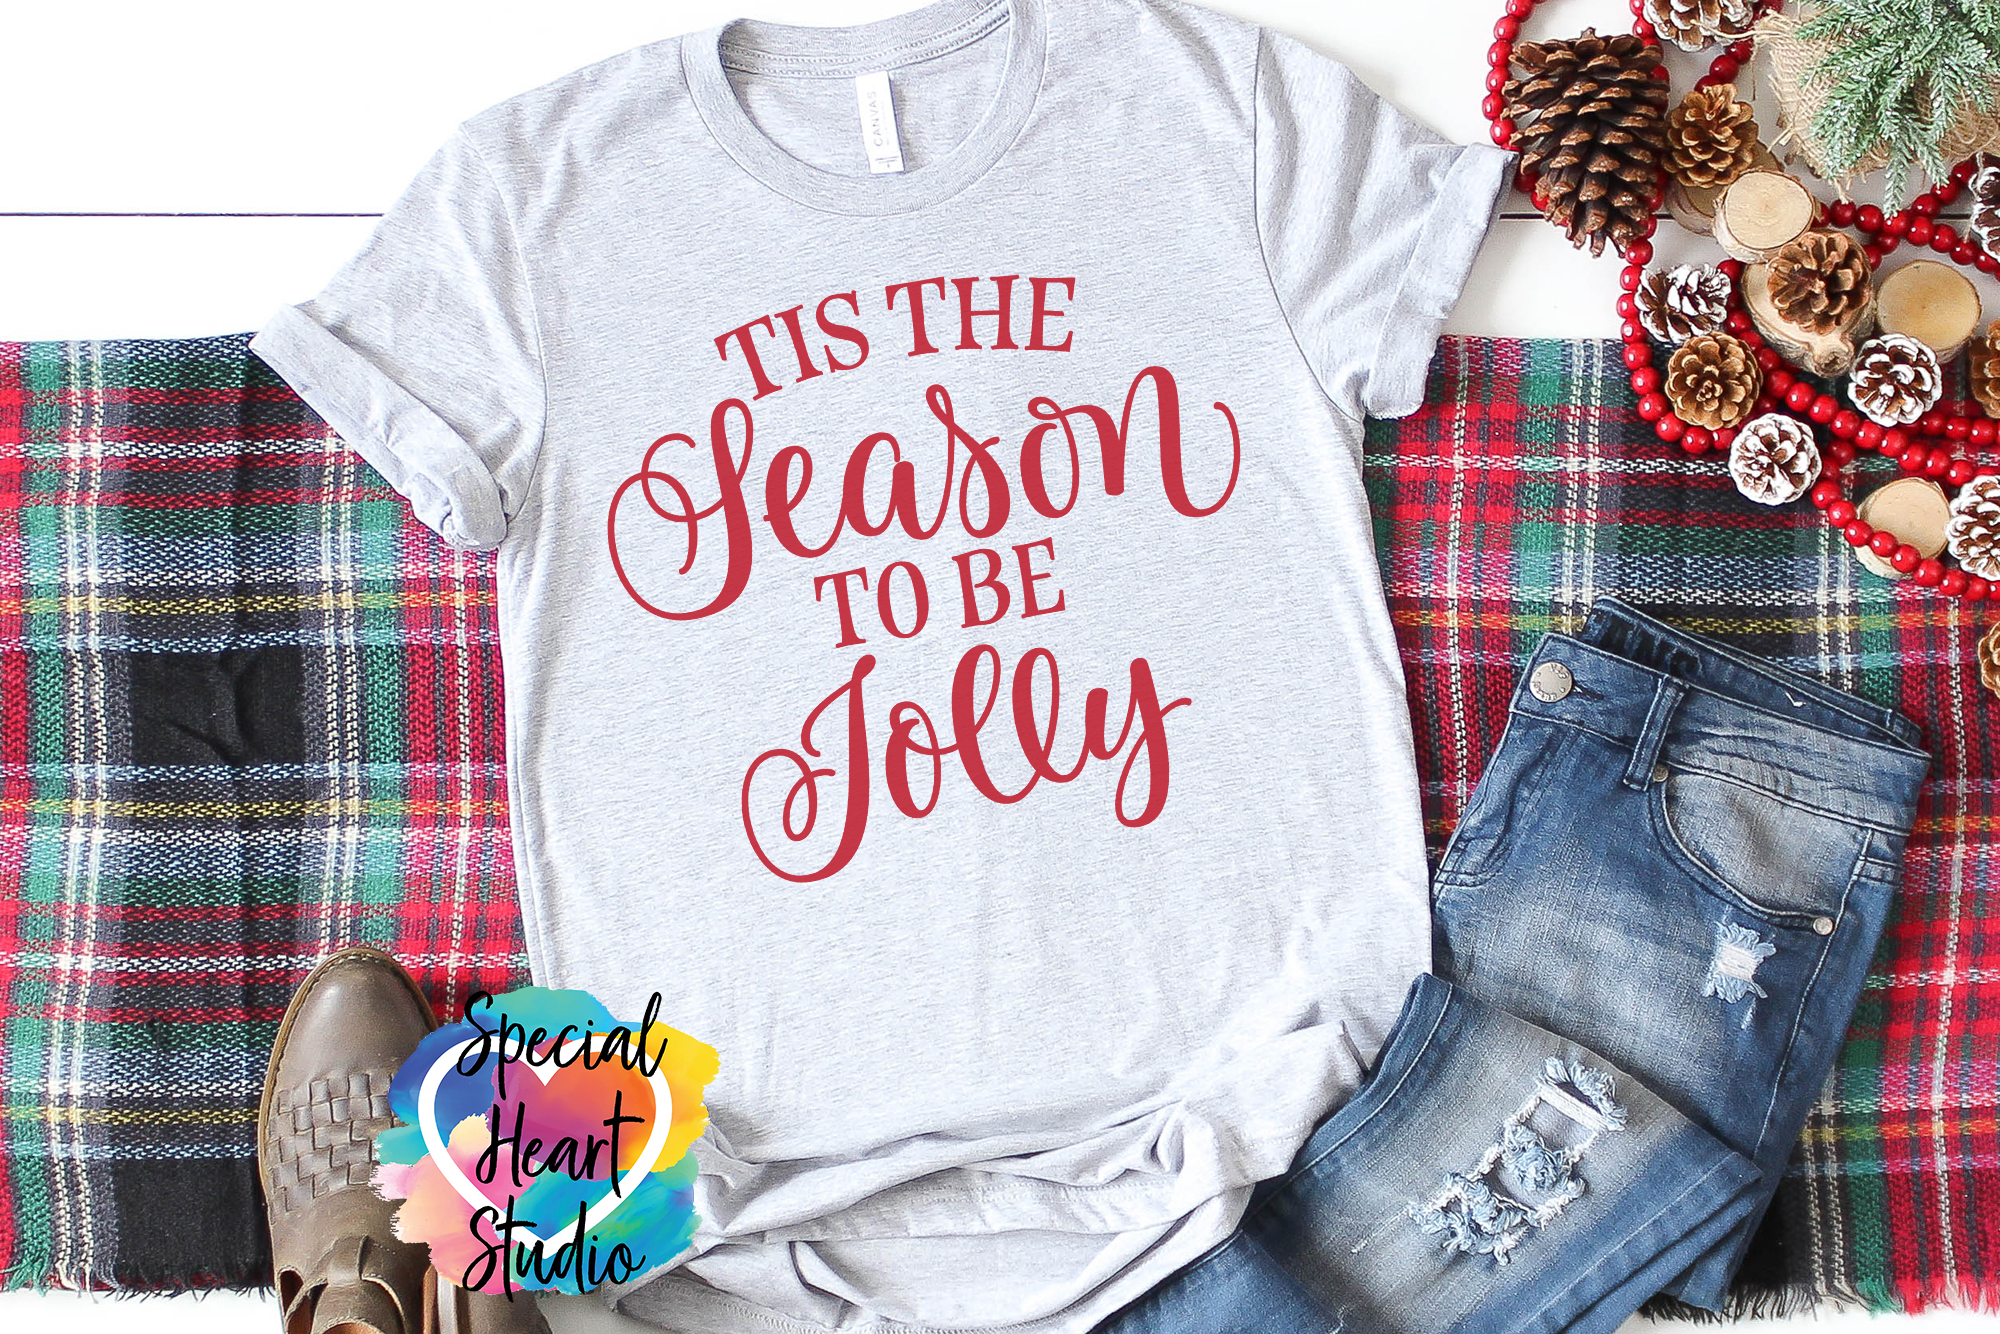 Tis The Season To Be Jolly - A Christmas SVG Cut File example image 1